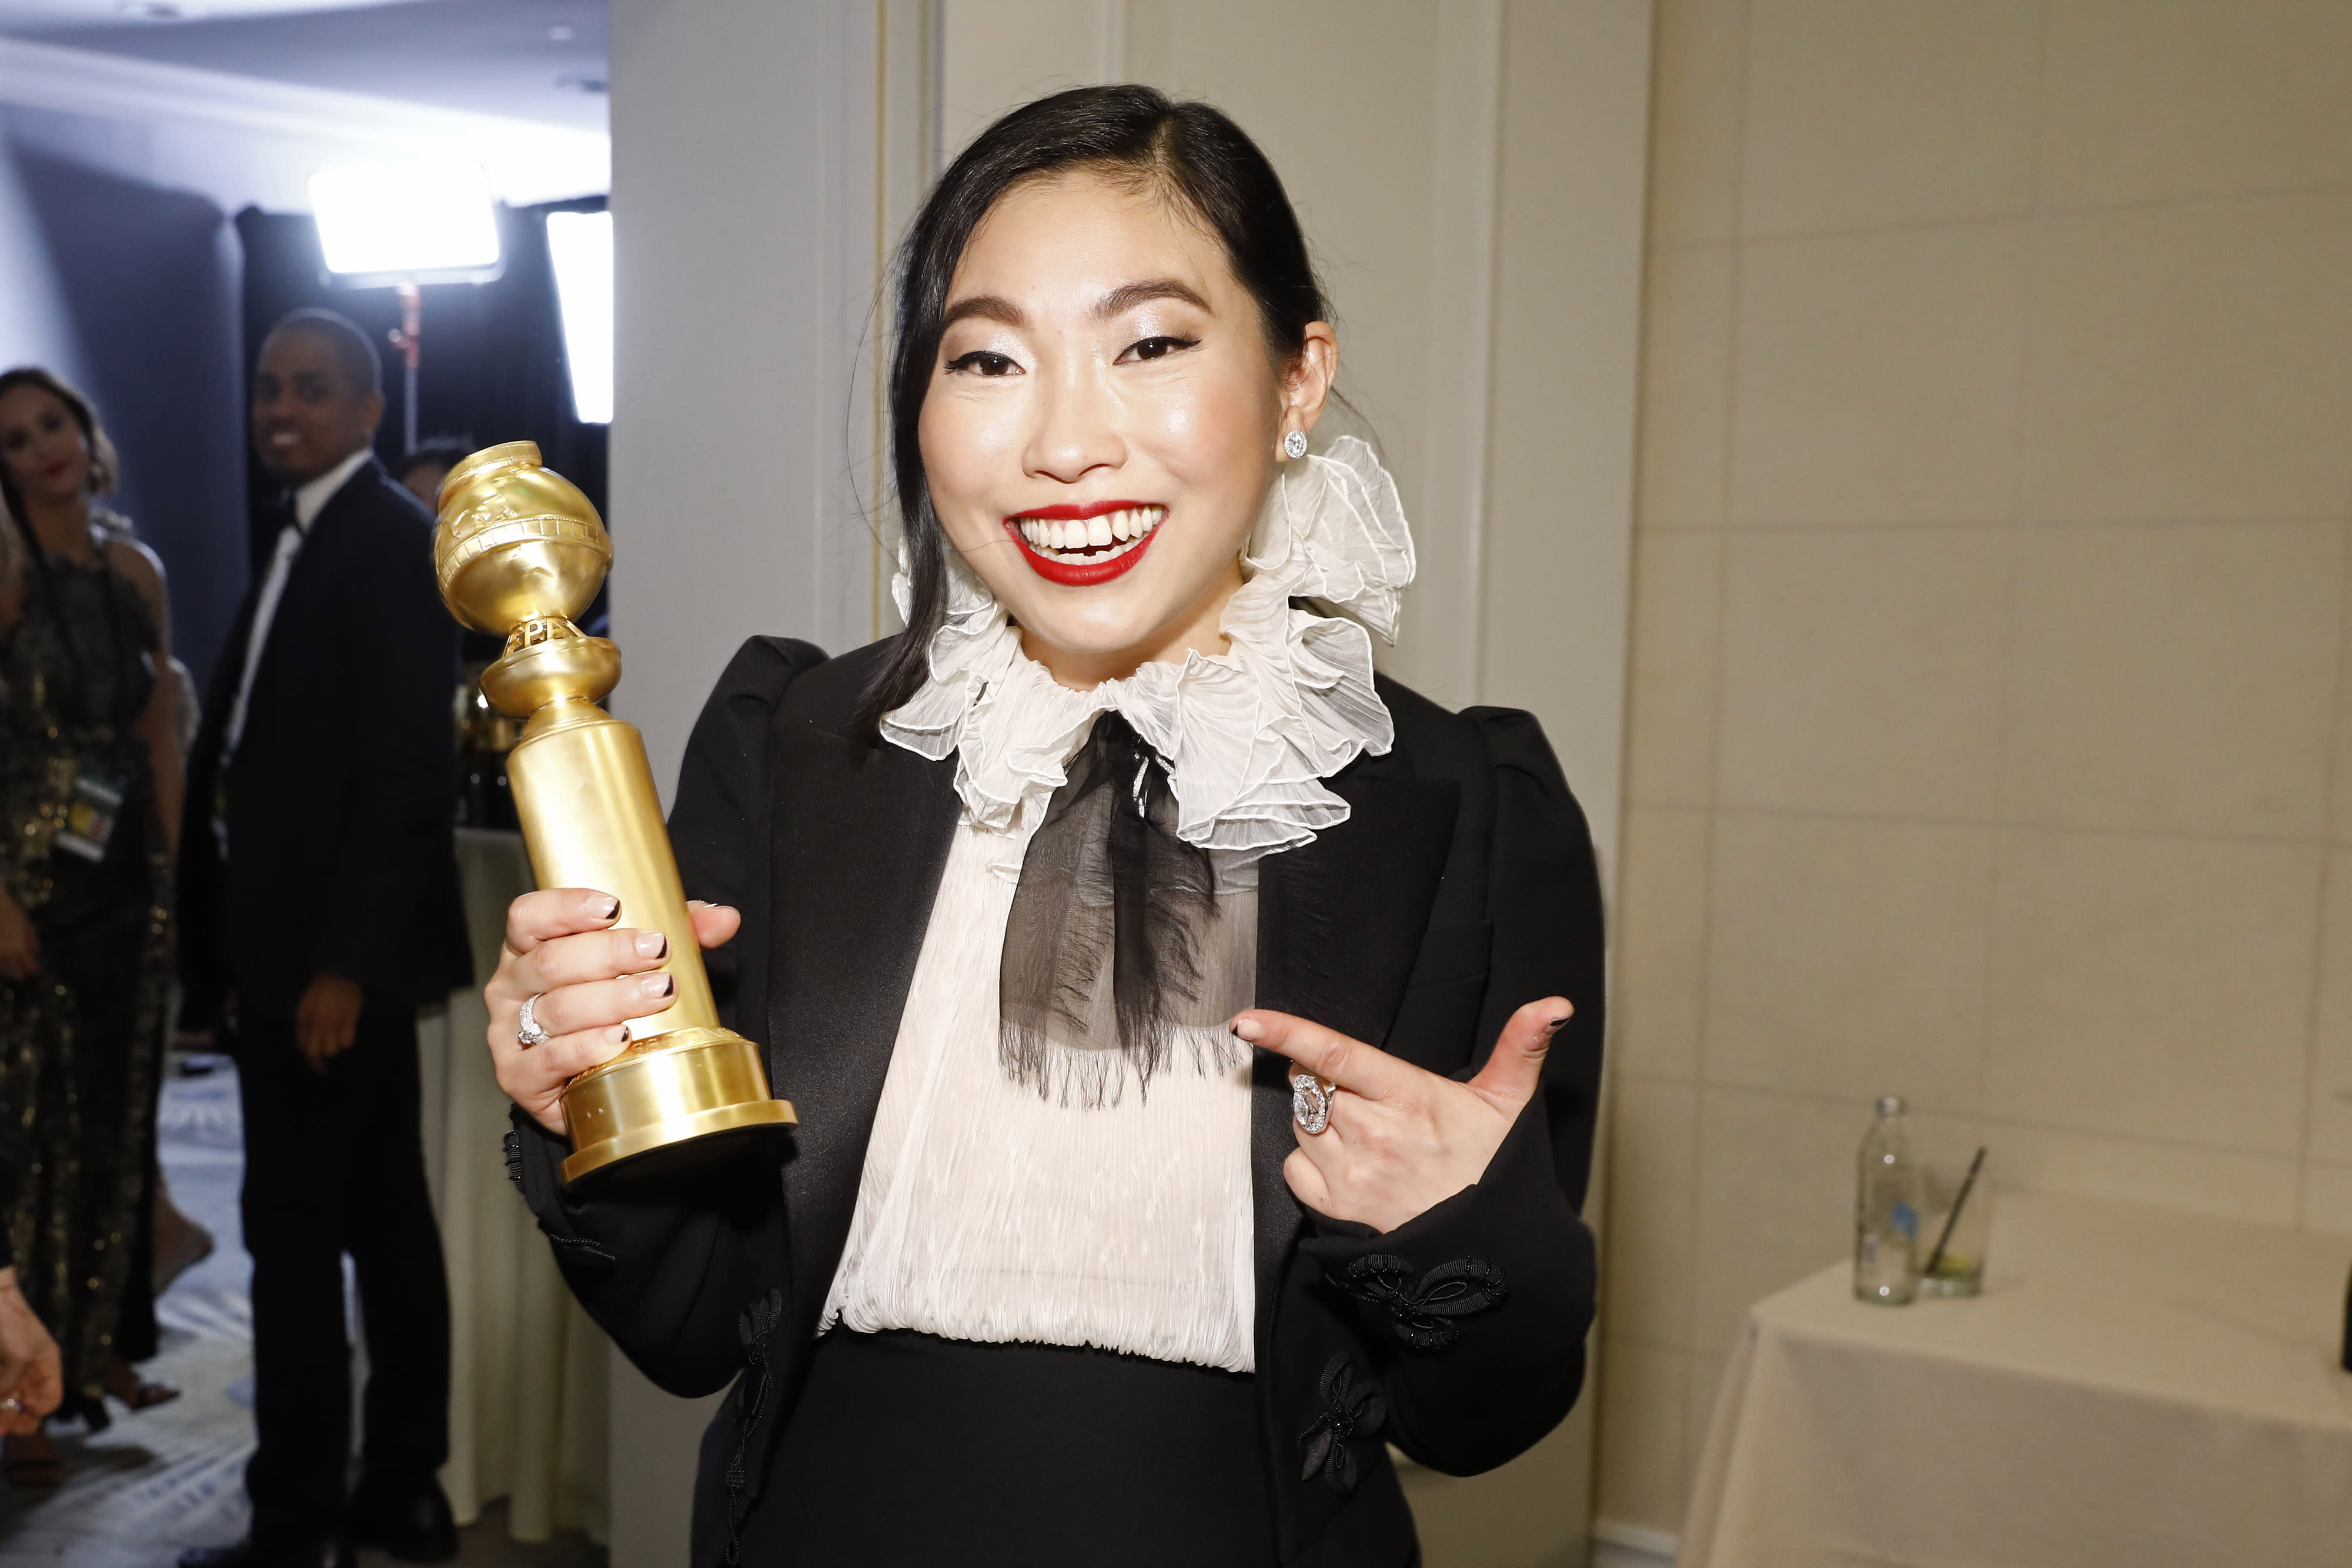 BEVERLY HILLS, CALIFORNIA - JANUARY 05: 77th ANNUAL GOLDEN GLOBE AWARDS -- Pictured: Actress Awkwafina in the press after winning the award for Best Performance by an Actress in a Motion Picture - Musical or Comedy for The Farewell at the 77th Annual Golden Globe Awards held at the Beverly Hilton Hotel on January 5, 2020. -- (Photo by Trae Patton/NBC/NBCU Photo Bank via Getty Images)